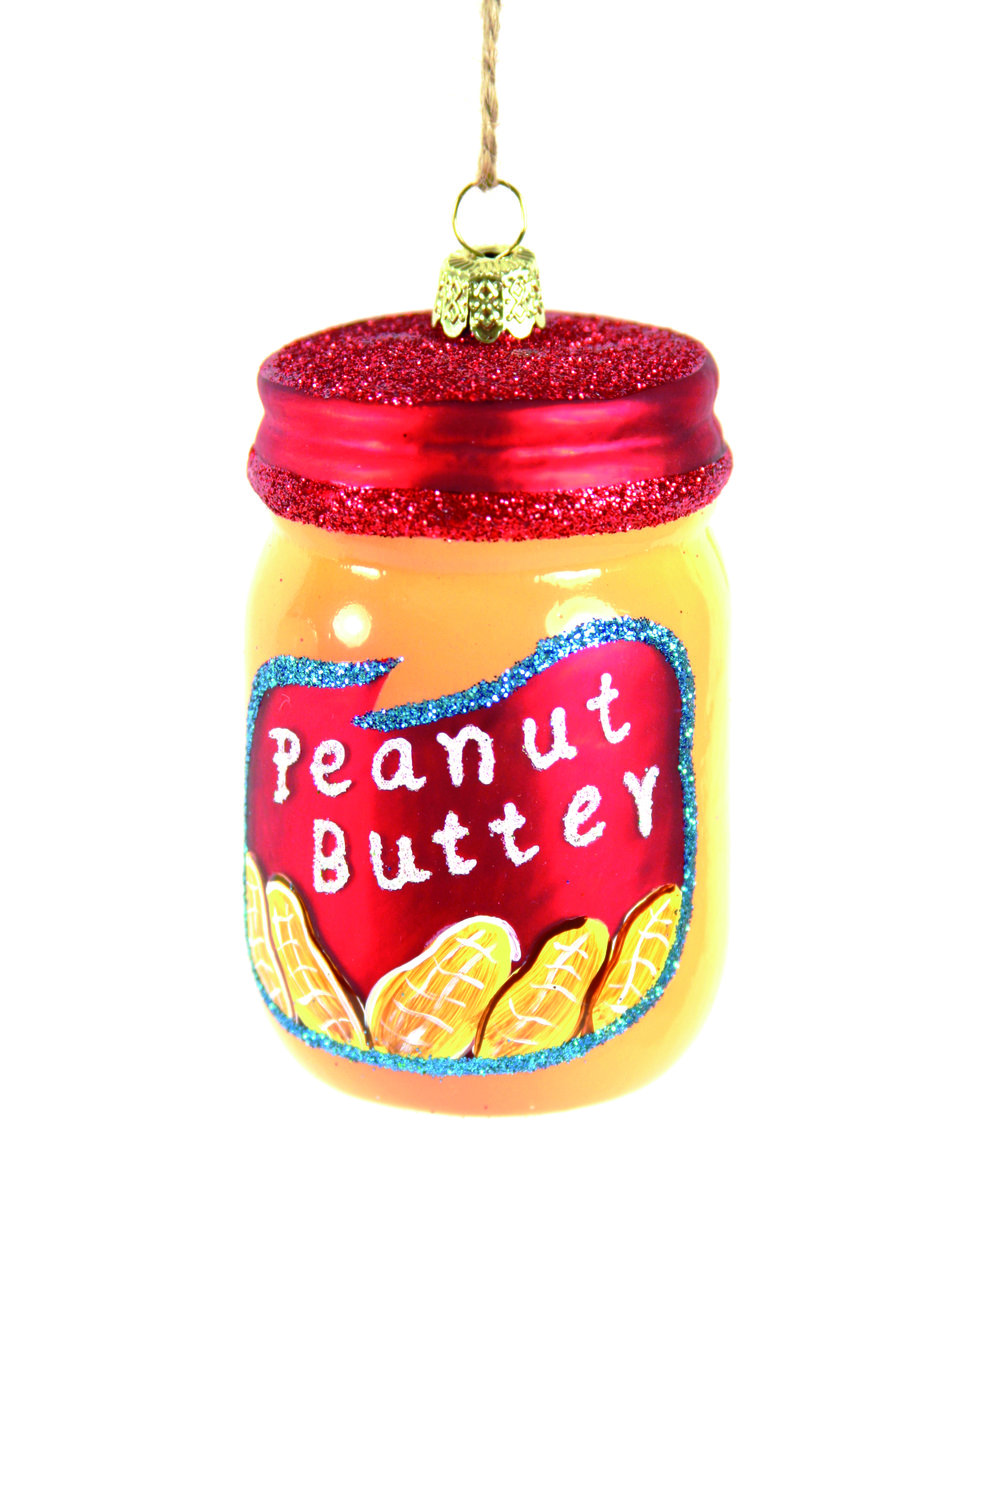 W.A. Green Cody Foster Peanut Butter Decoration, £14.jpg